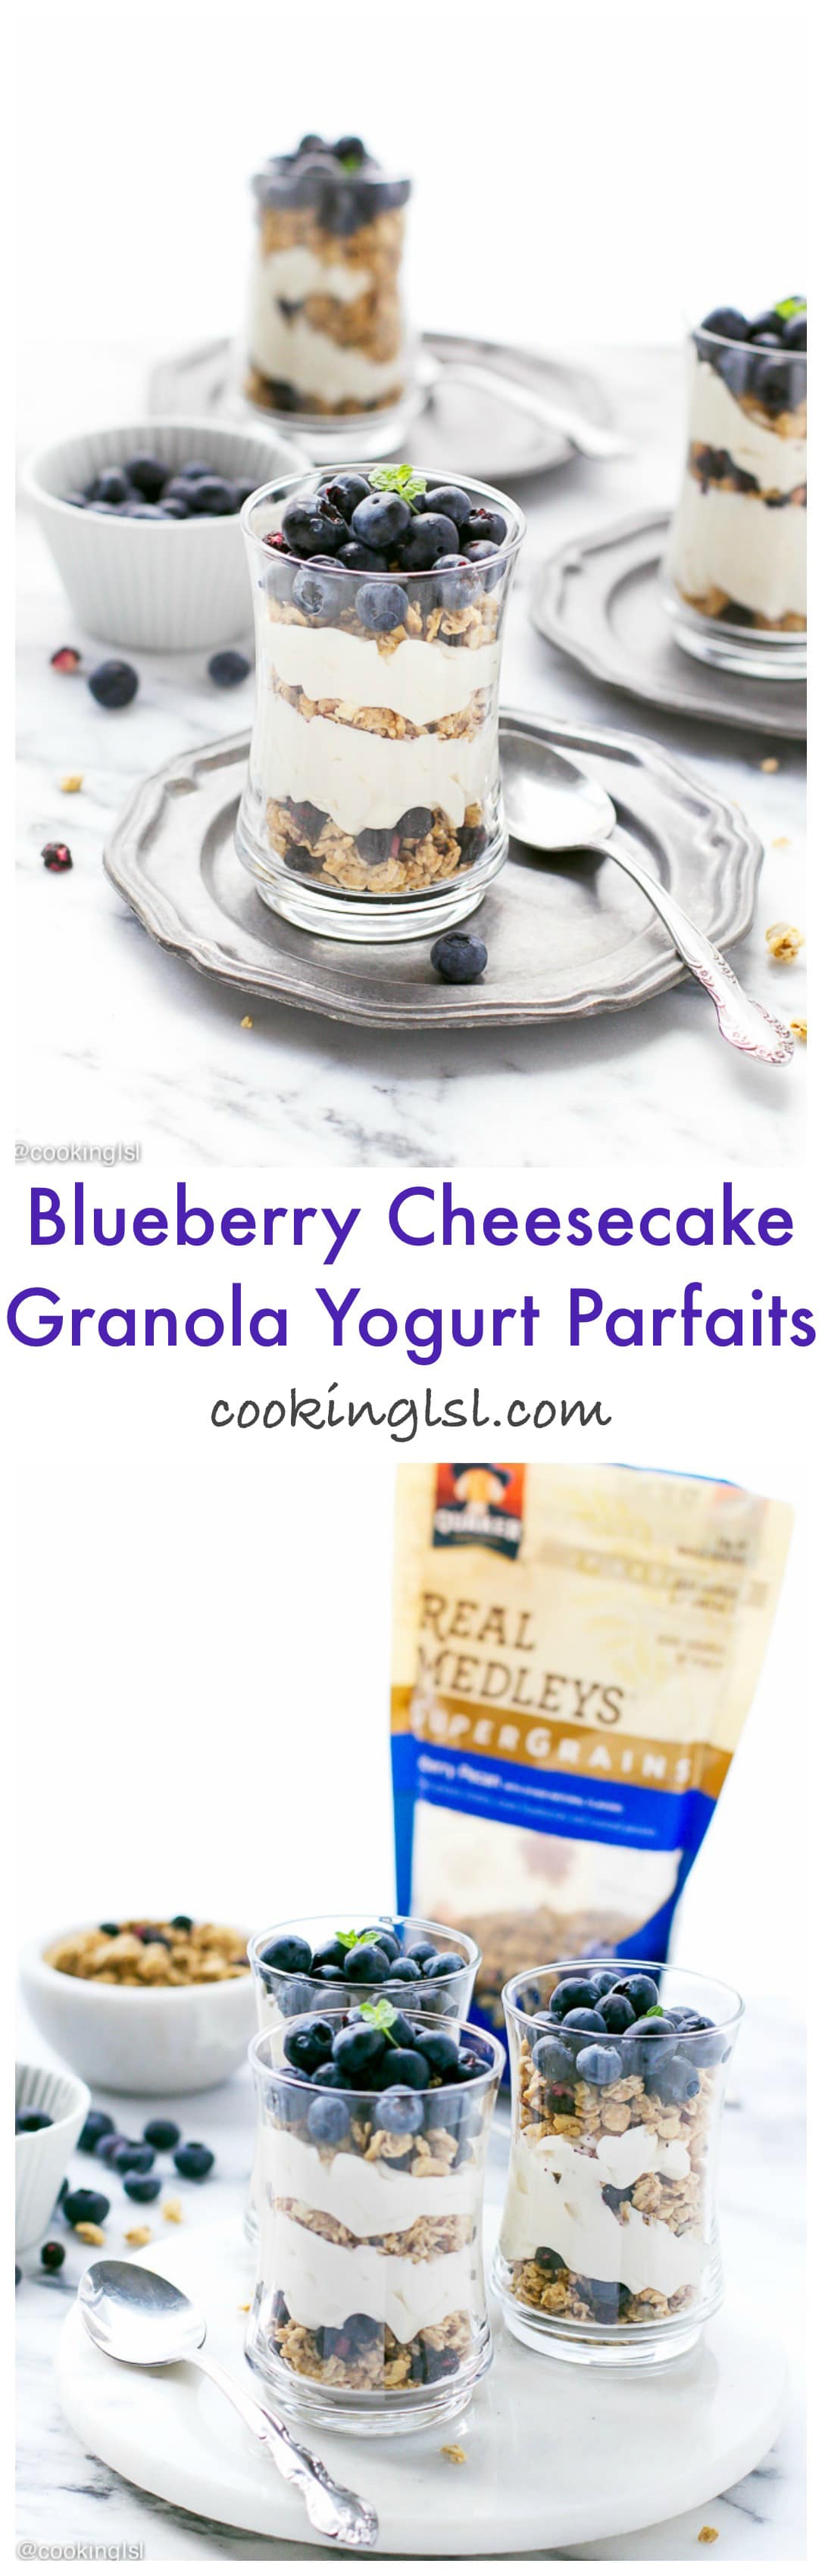 blueberry-granola-cheesecake-parfait-quaker-real-medley